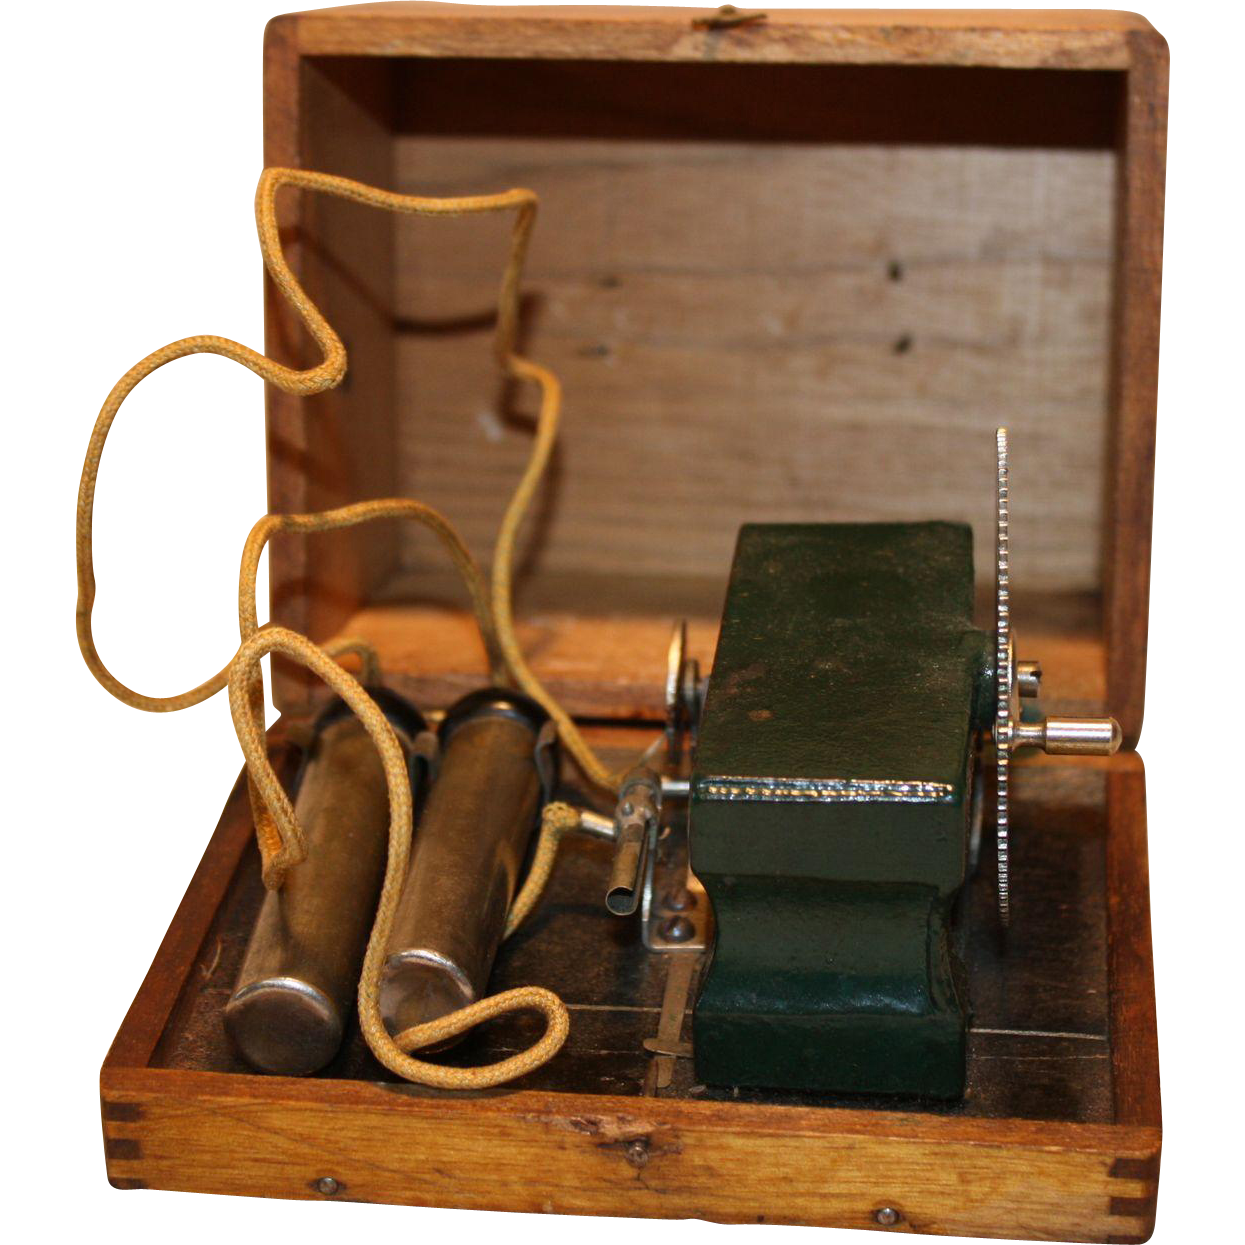 Hand Crank Tesla Thriller type Electric Shock Generator 18-1900's